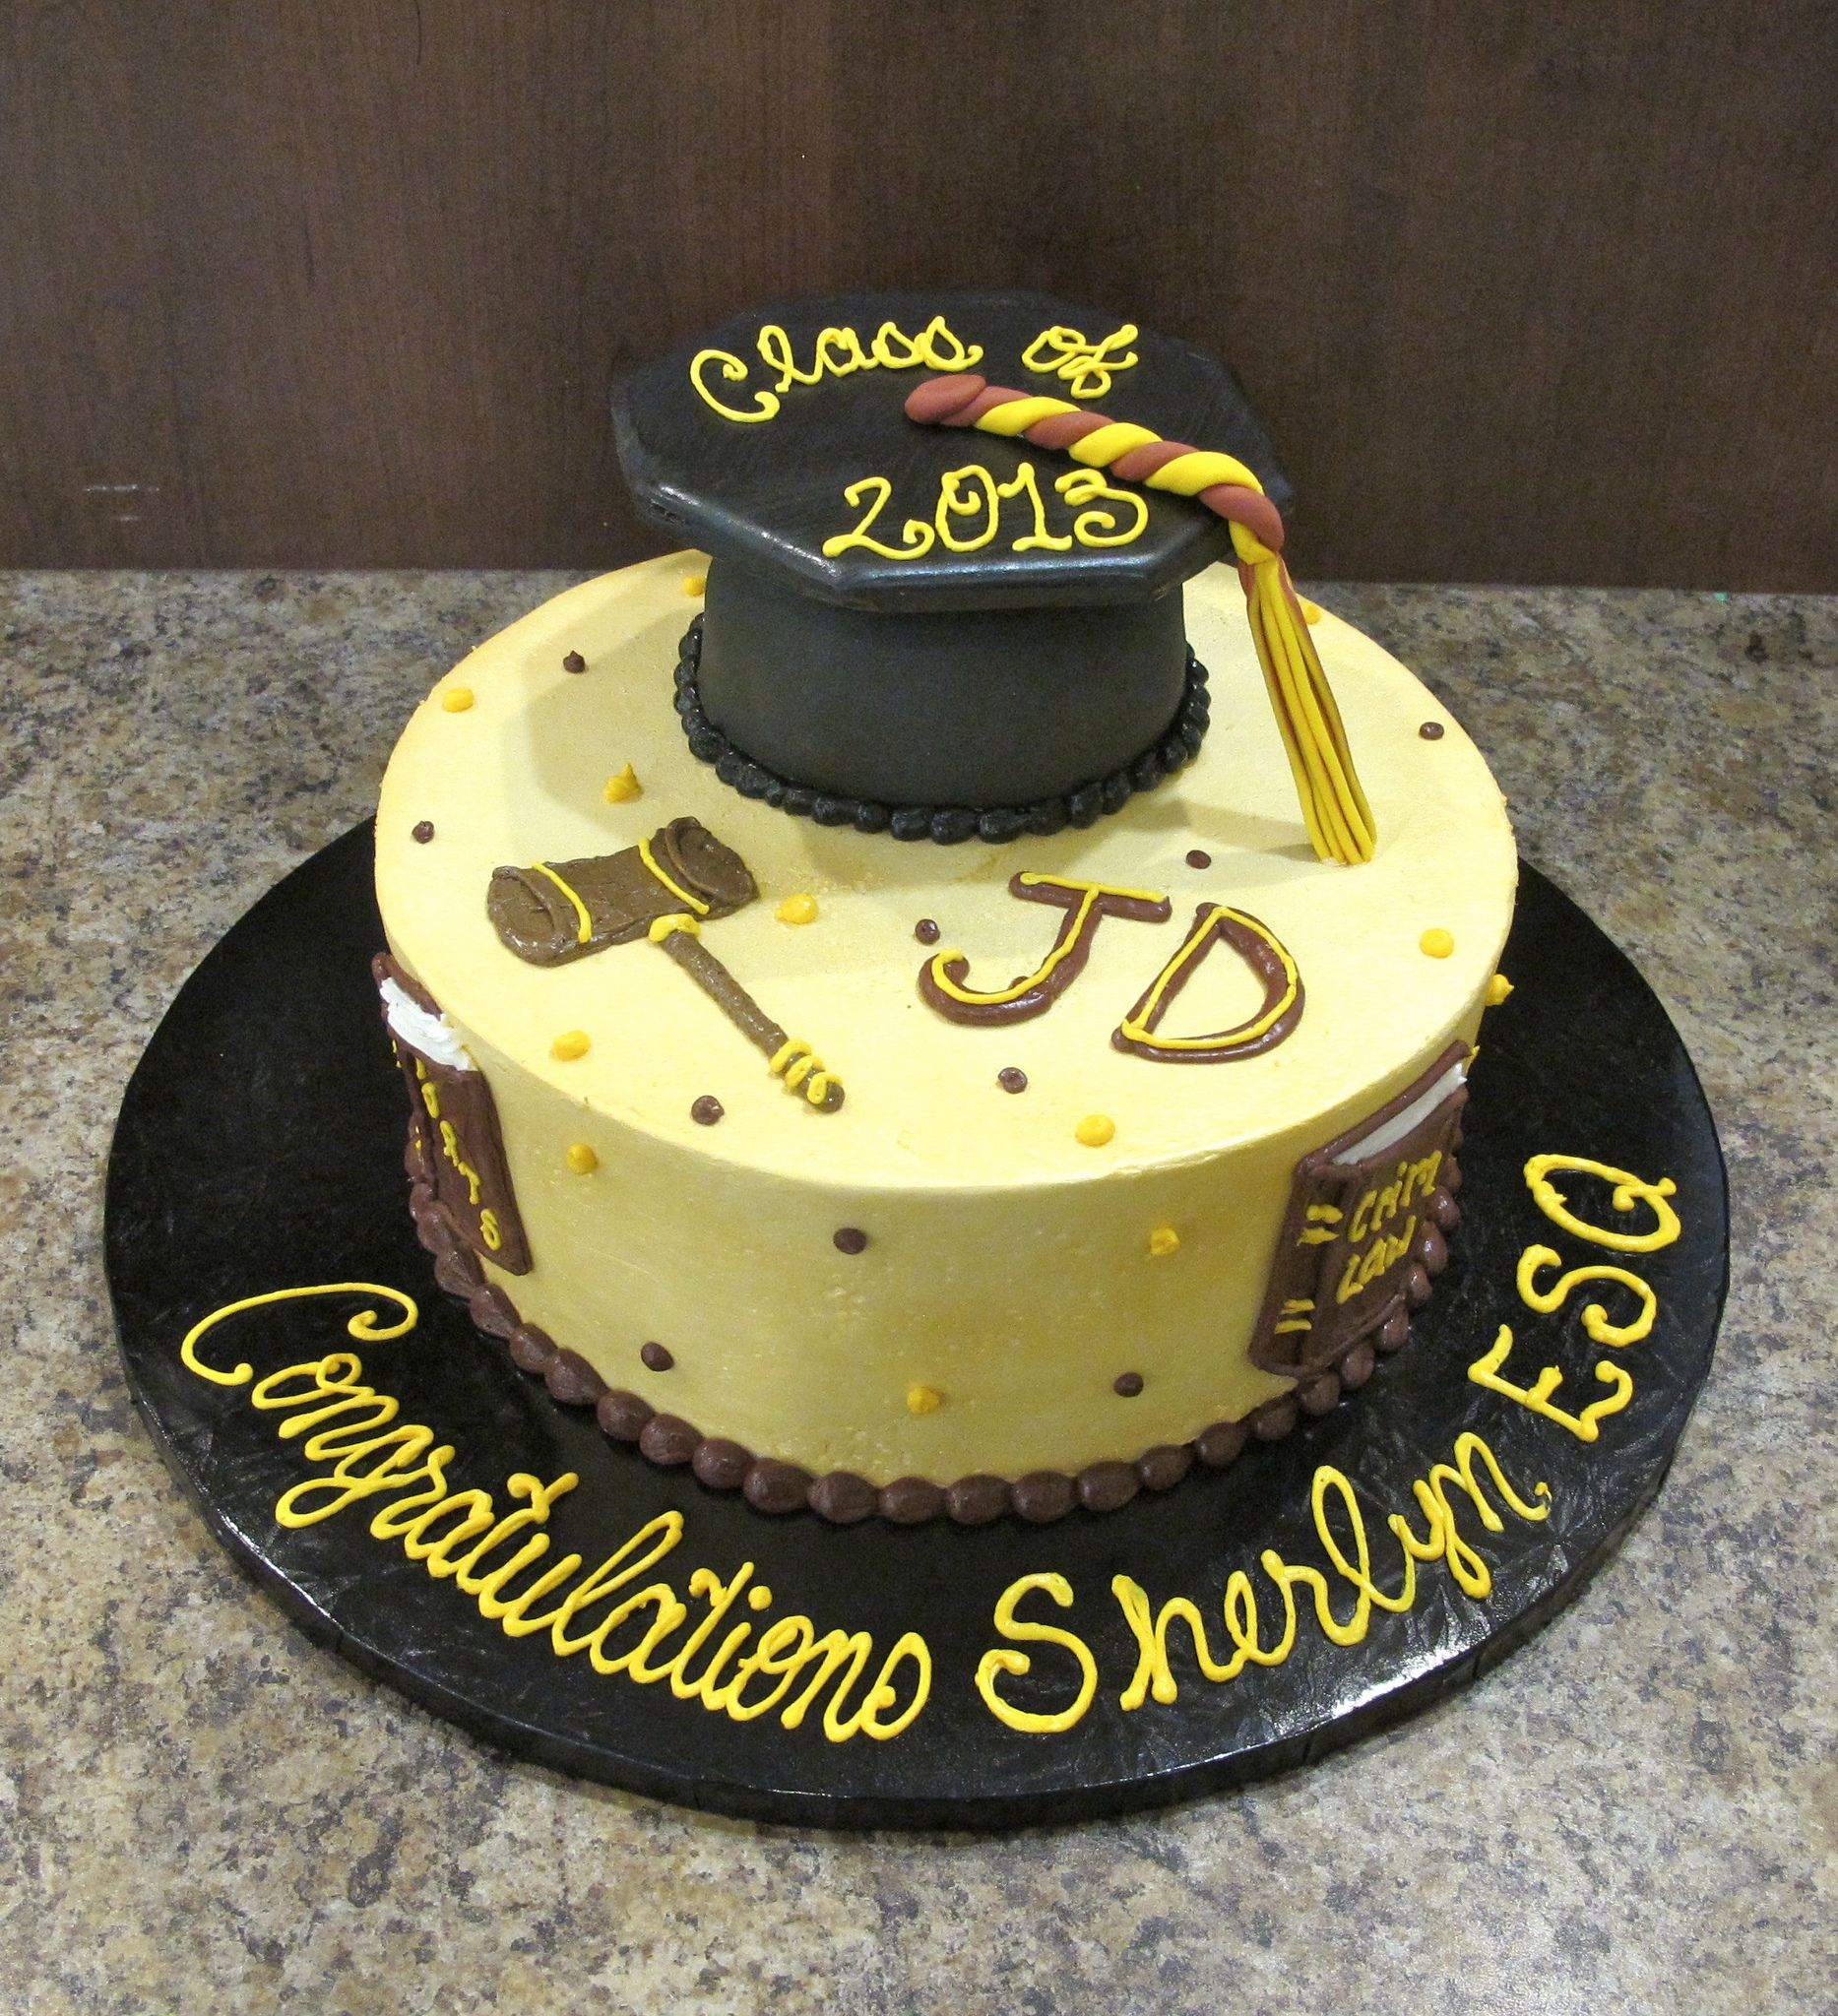 Law School Graduation Cake Toppers